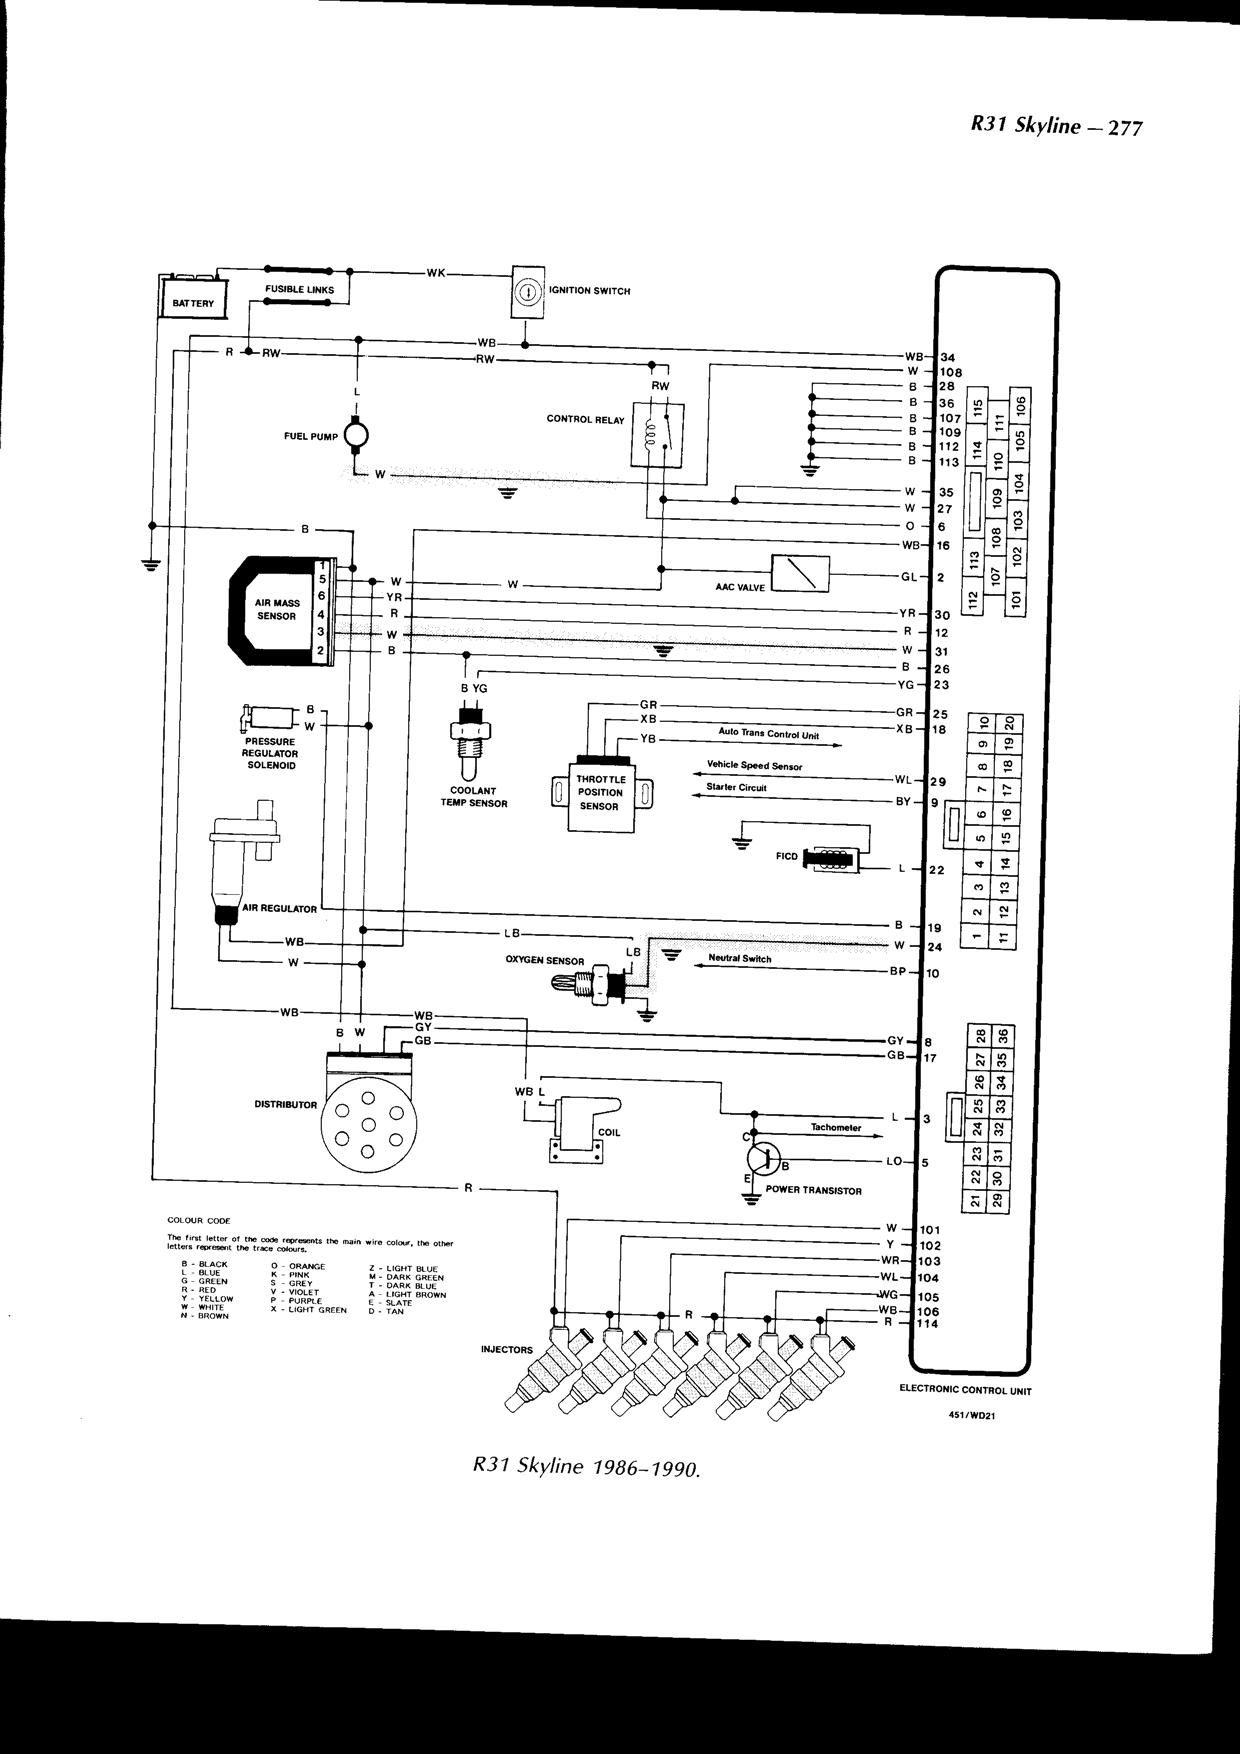 Nissan 1400 electrical wiring diagram nissan pinterest nissan 1400 electrical wiring diagram cheapraybanclubmaster